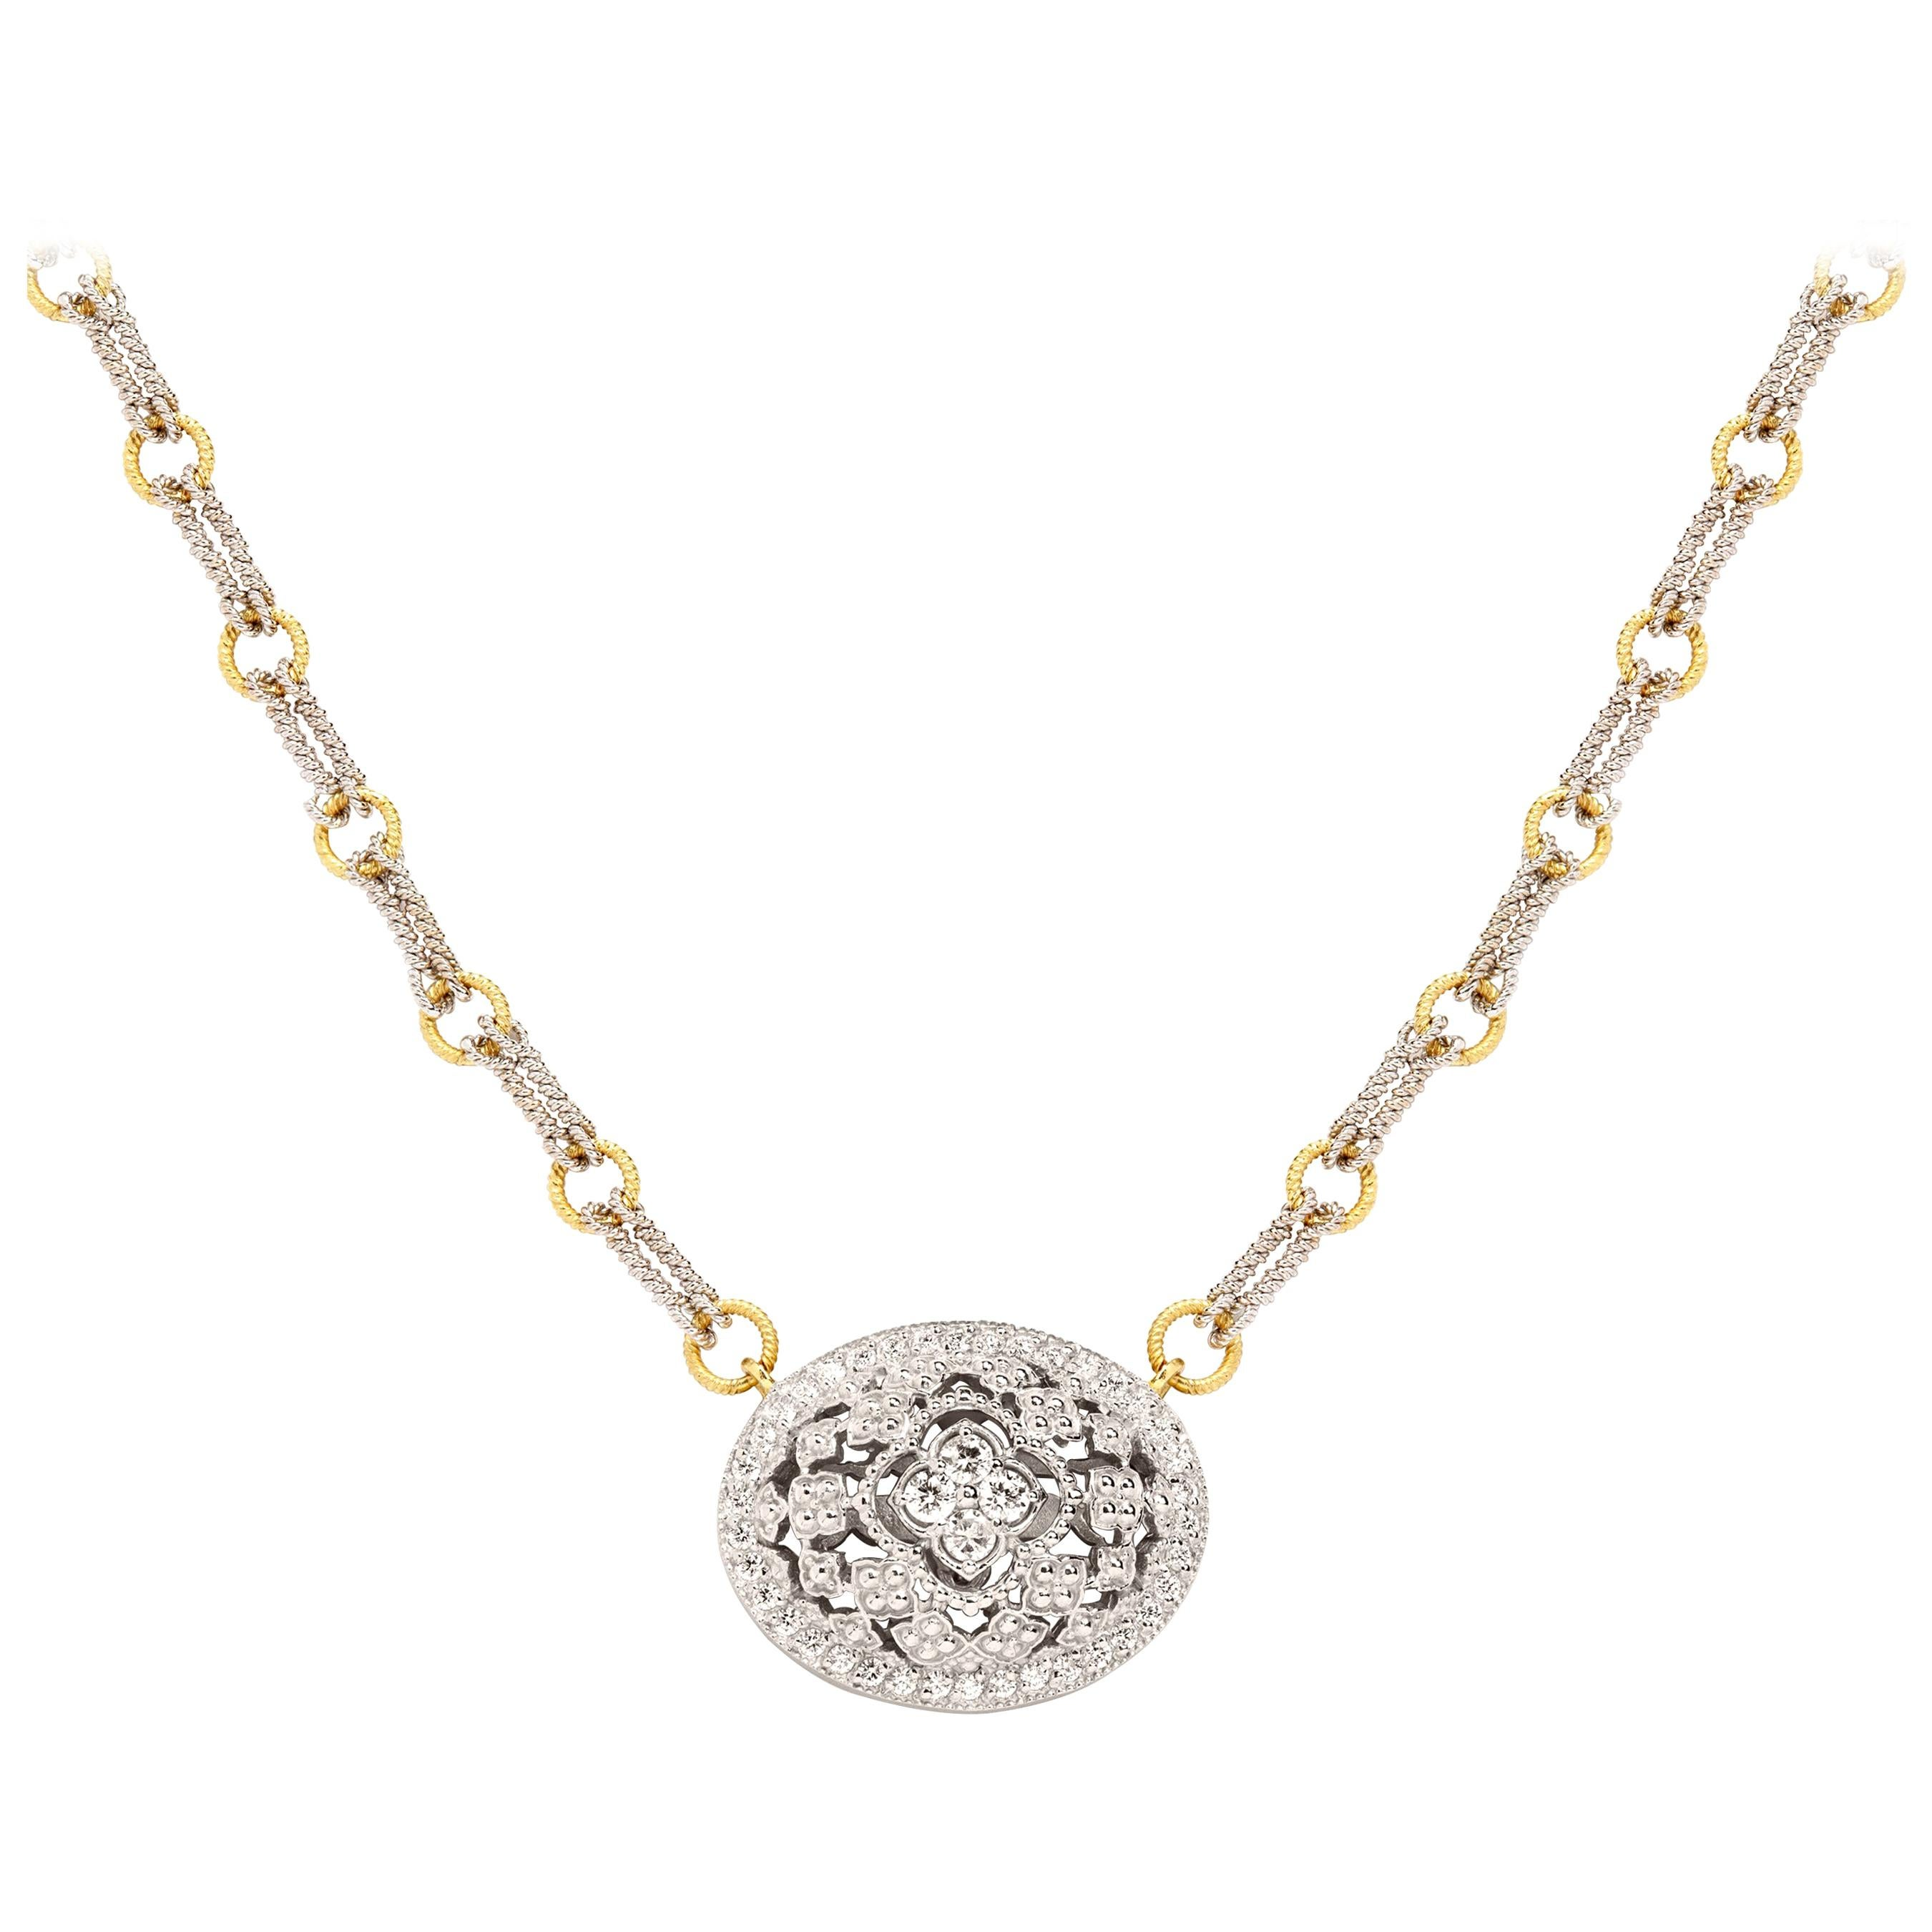 Stambolian Two-Tone White Yellow Gold and Diamond Oval Pendant Chain Necklace